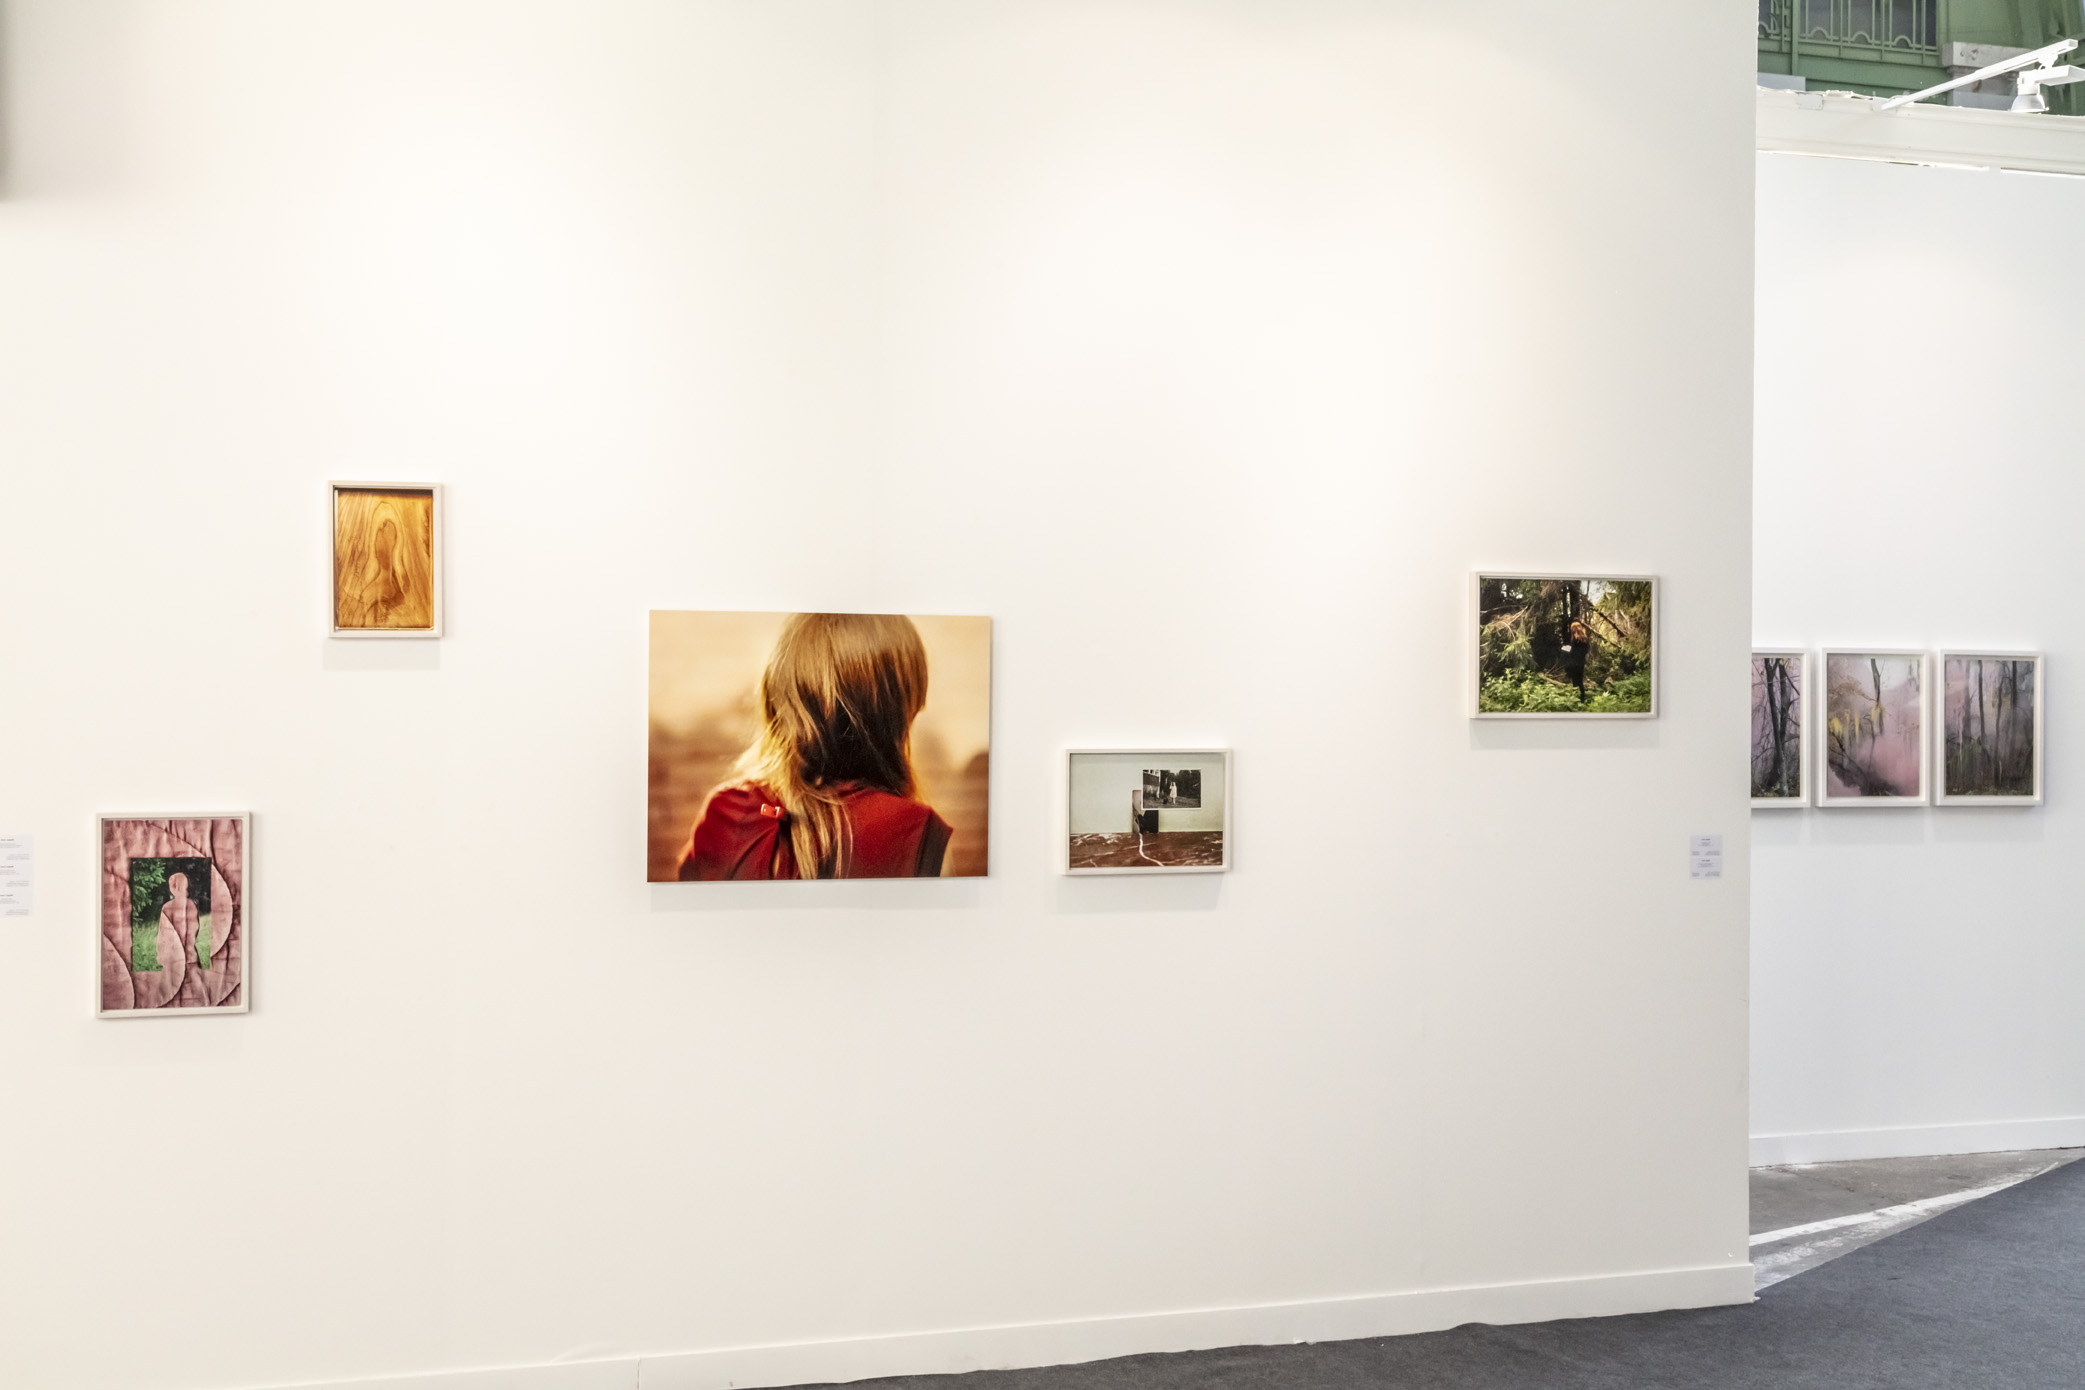 Exhibition View of Anni Leppälä at Paris Photo, Paris 2019